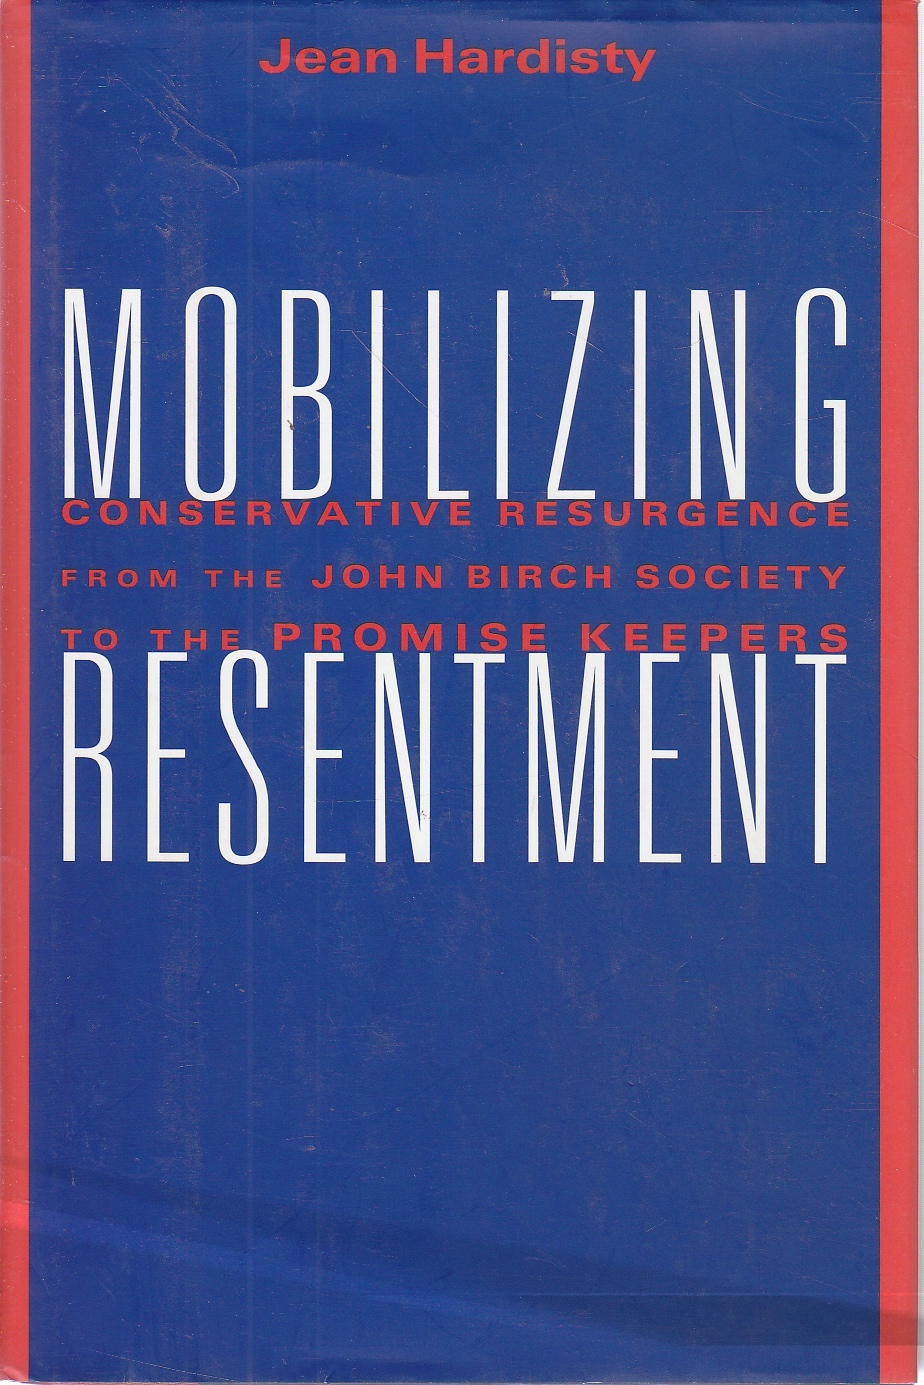 Image for Mobilizing Resentment Conservative Resurgence from the John Birch Society to the Promise Keepers